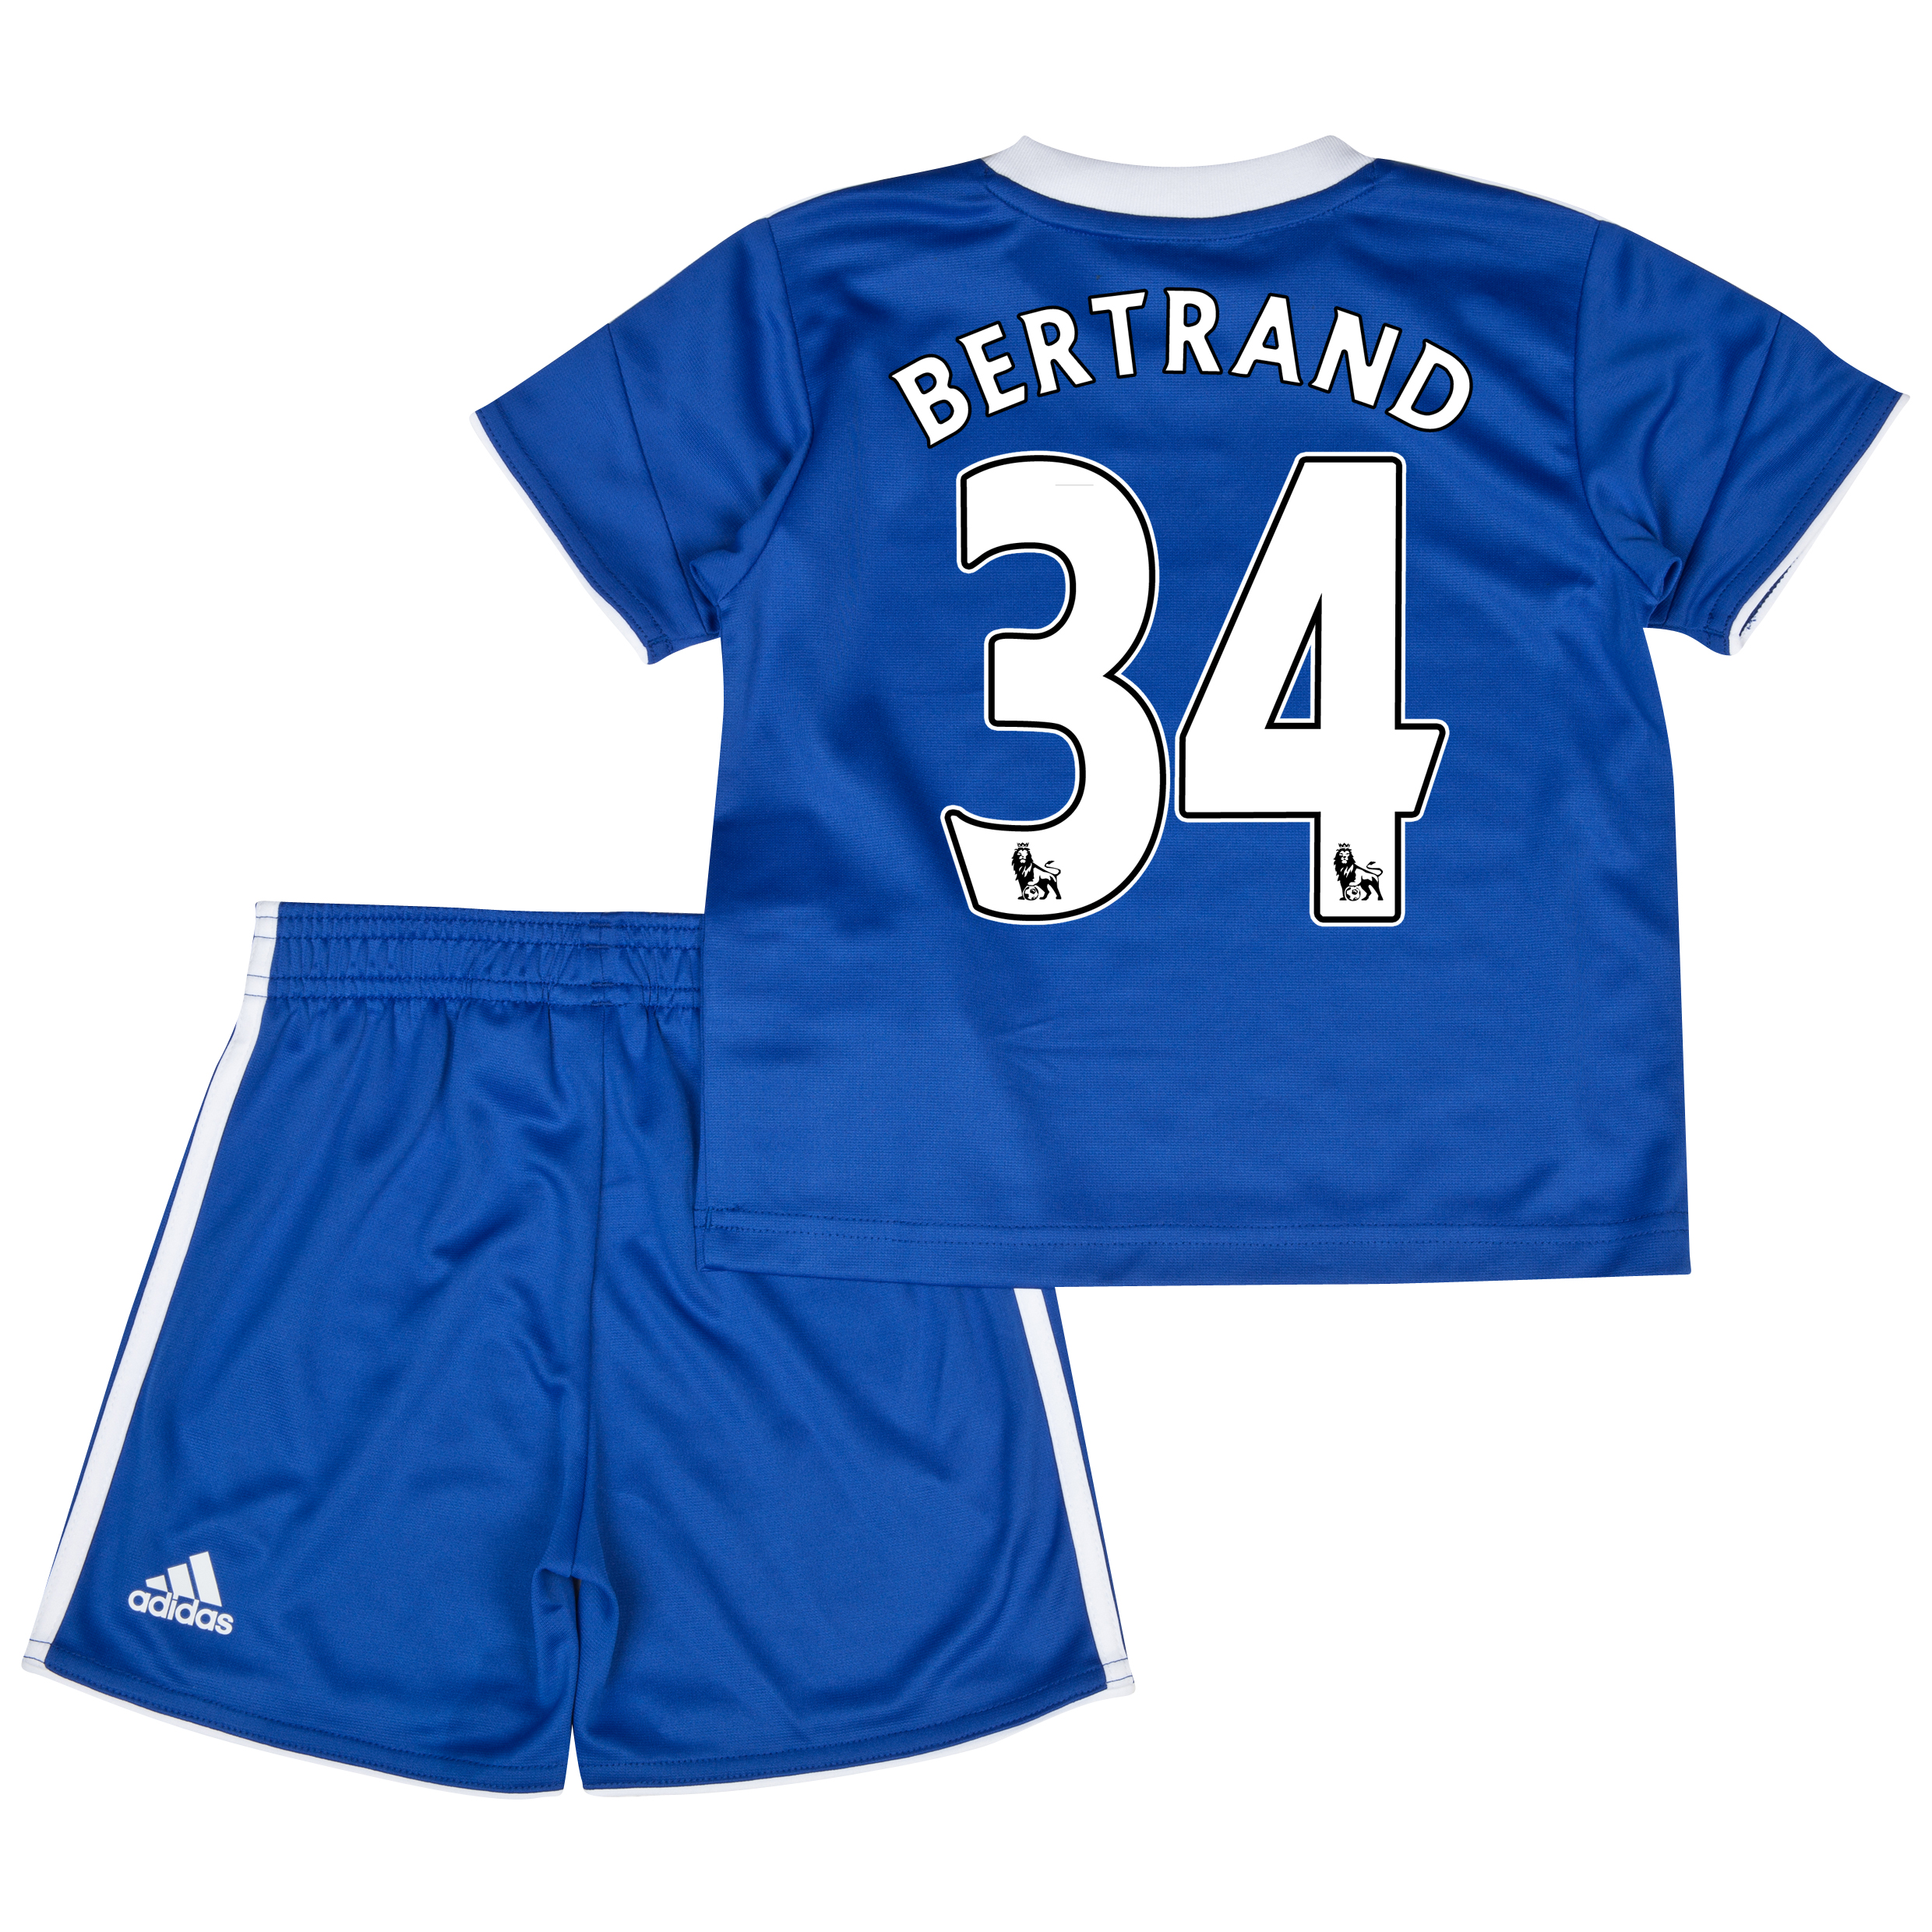 Chelsea Home Mini Kit 2013/14 with Bertrand 34 printing